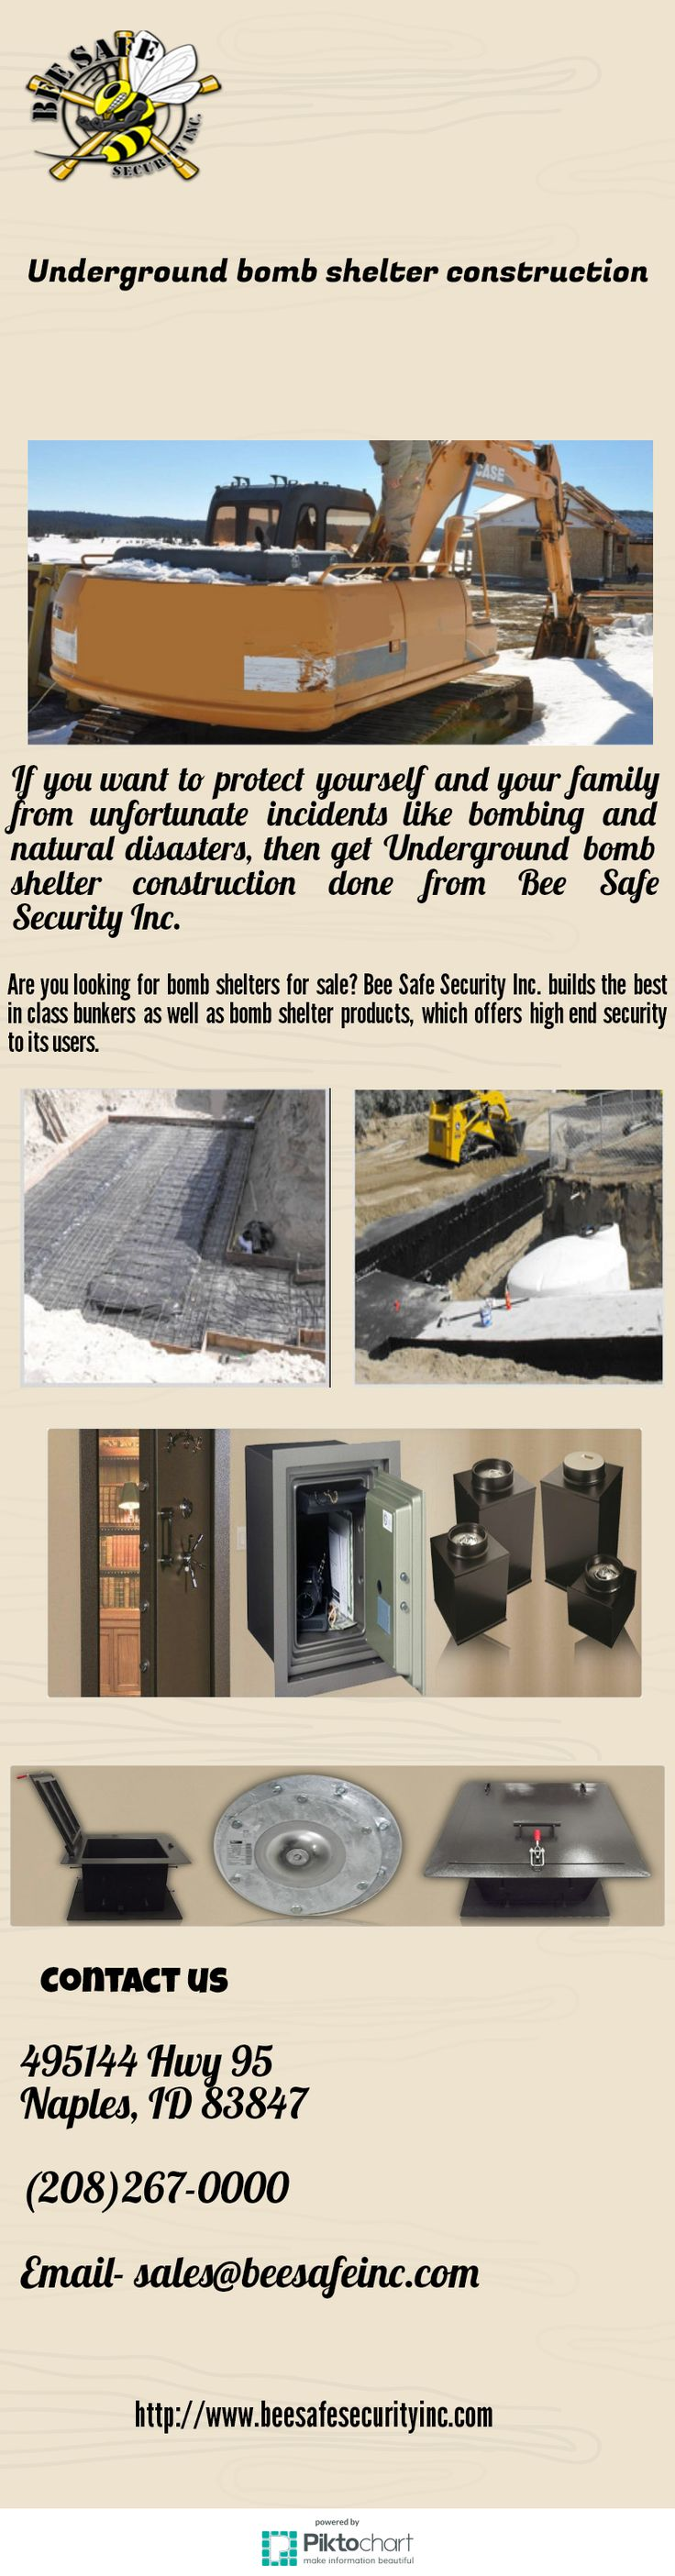 Looking for best underground shelters for sale? If you want to get these shelters, you should contact to Bee Safe Security Inc. They provide best solutions to get safe rooms, bomb shelters and other kind of underground shelters at affordable cost.visit here http://www.beesafesecurityinc.com/